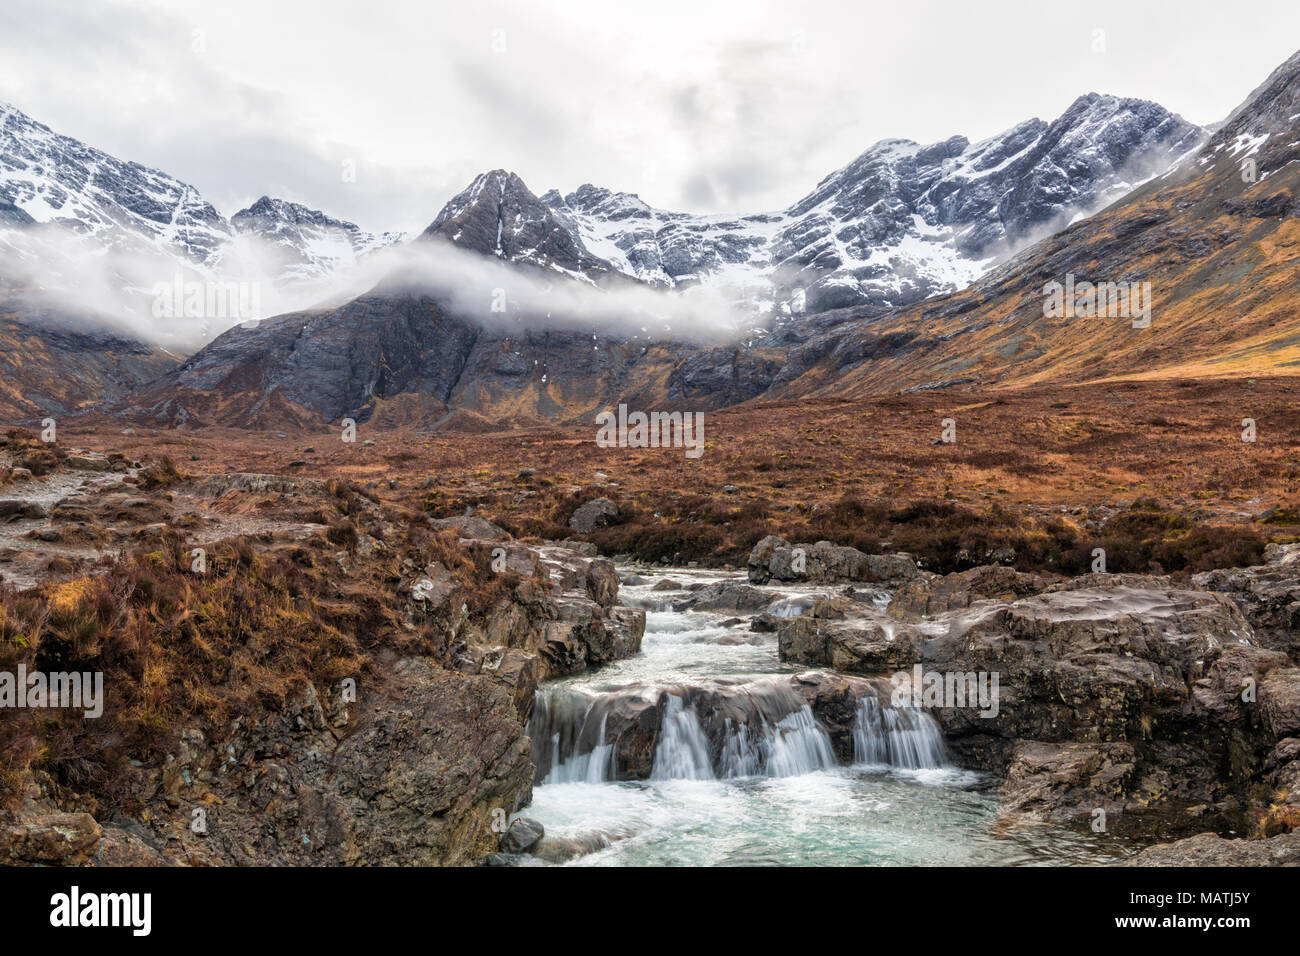 Fairy Pools with mist over the Black Cuillin mountains with waterfalls at the river Brittle, Isle of Skye, Scotland, UK in March - Stock Image